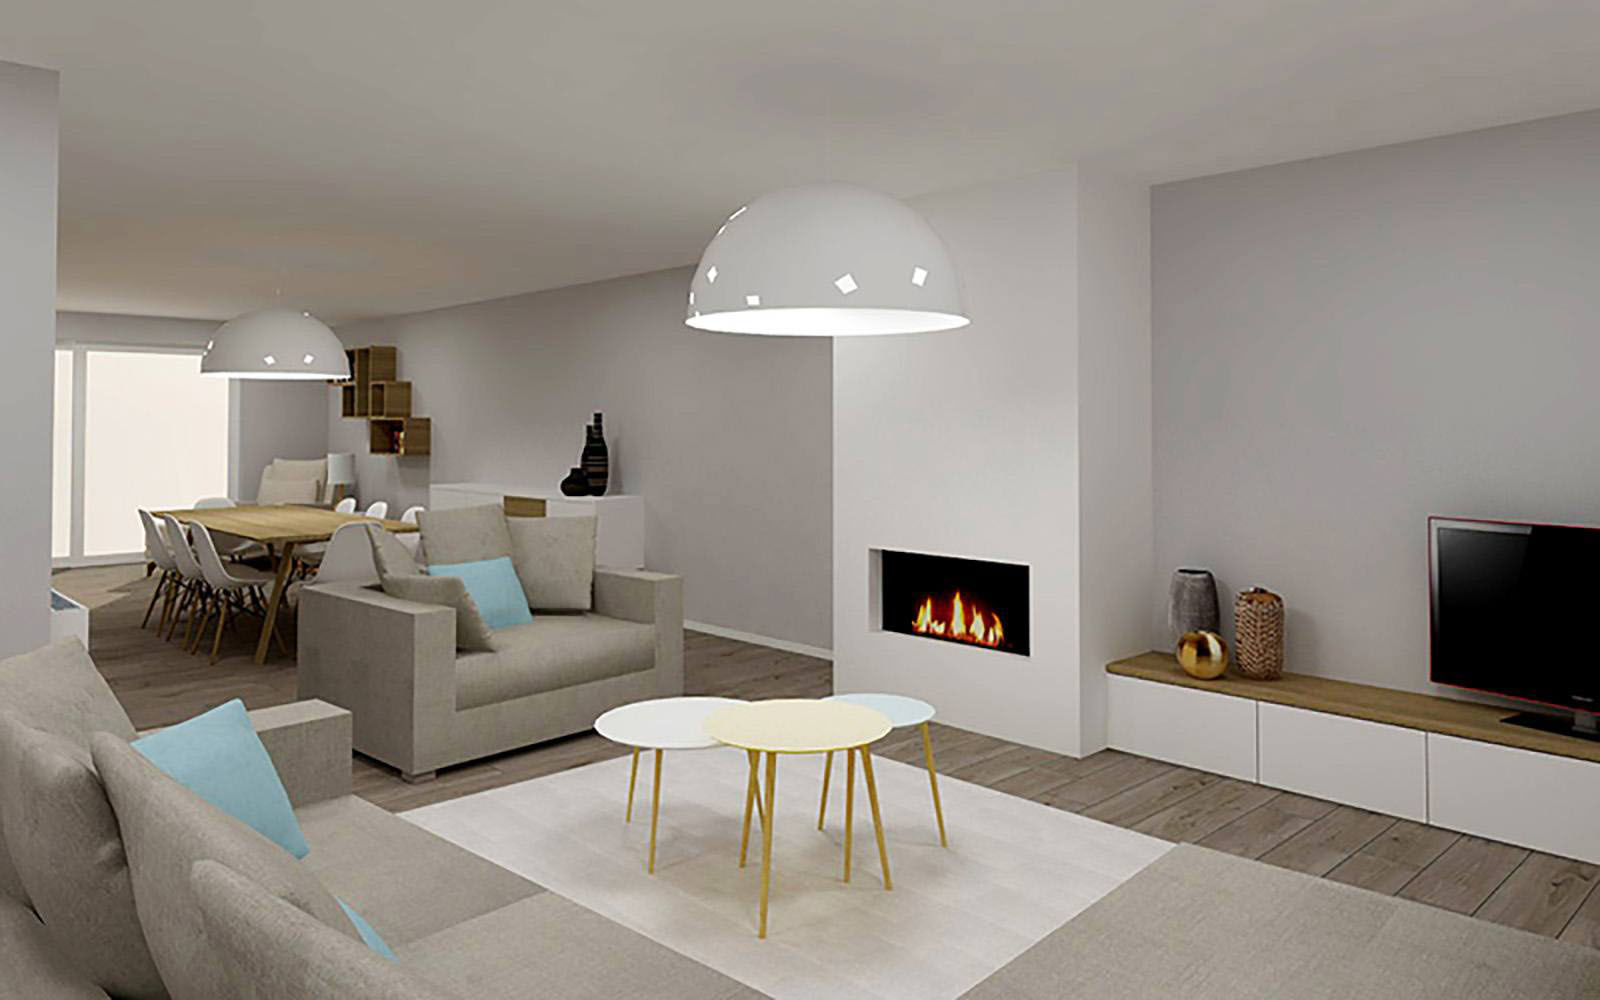 Asinterieur sandra avet interieur architecte home for Foto interior design